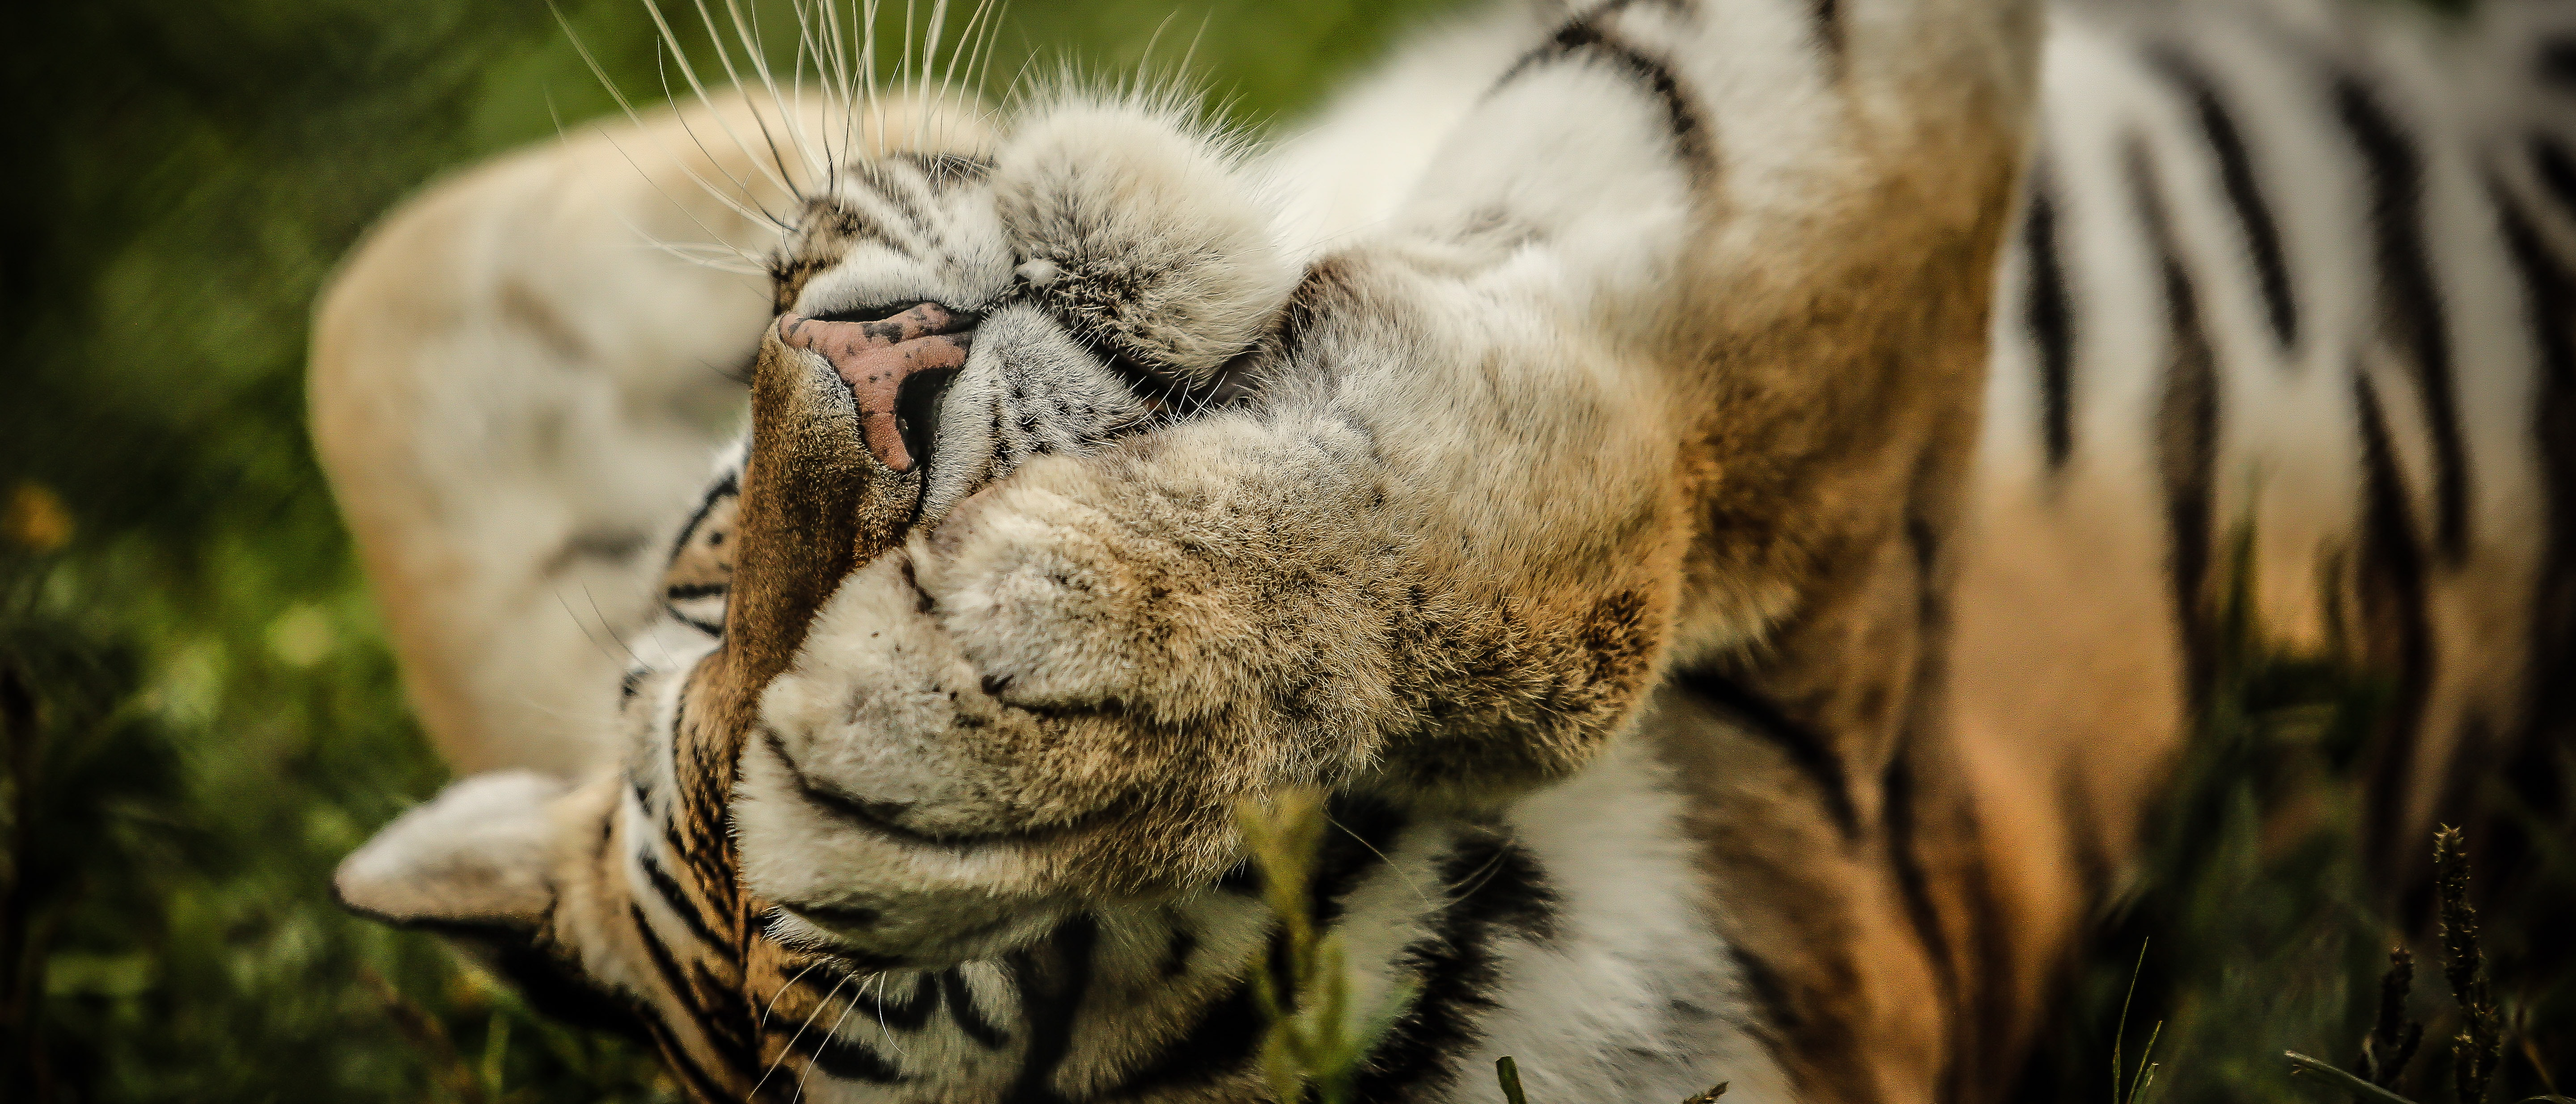 Close-up of a tiger covering its eye with its paw while lying in the grass